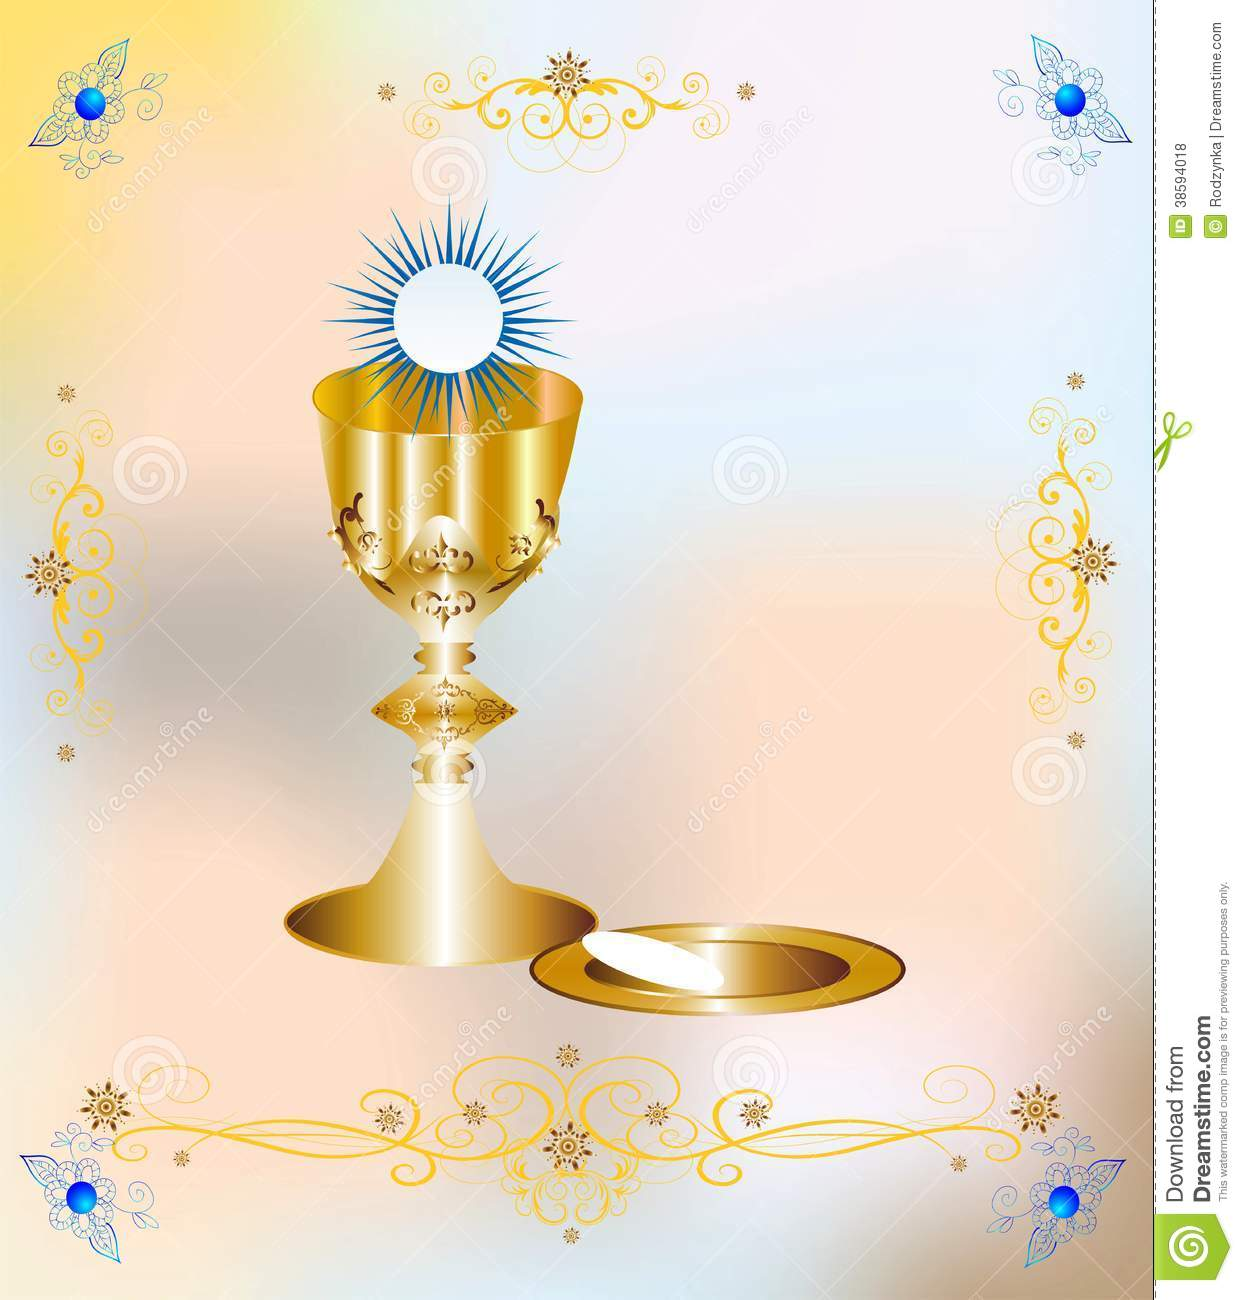 First Communion Symbols Clip Art First communion royalty free